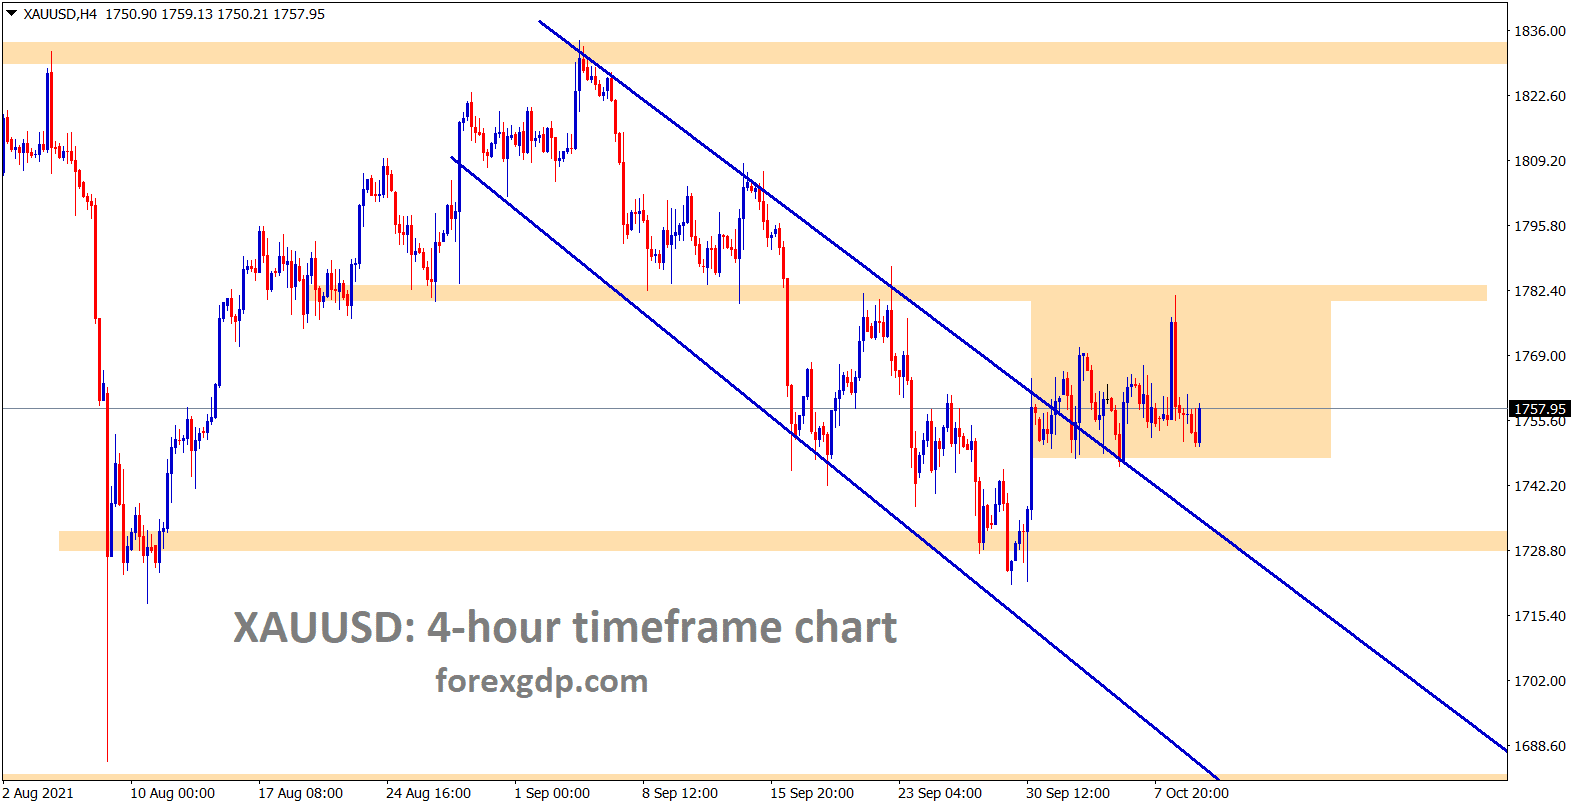 Gold is consolidating between the support and resistance area after breaking the descending channel